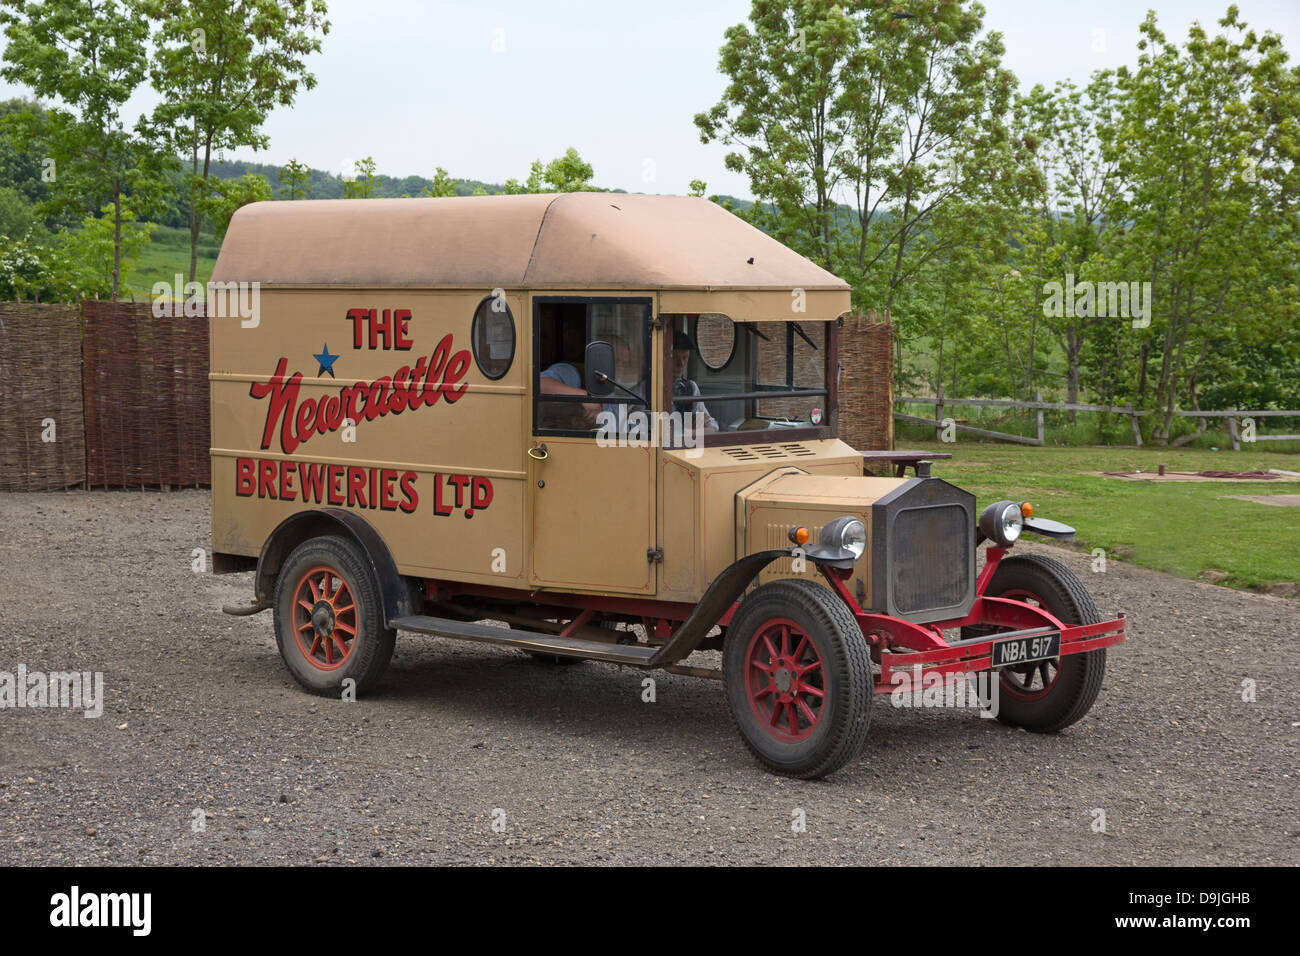 Old Newcastle Breweries delivery van - Stock Image